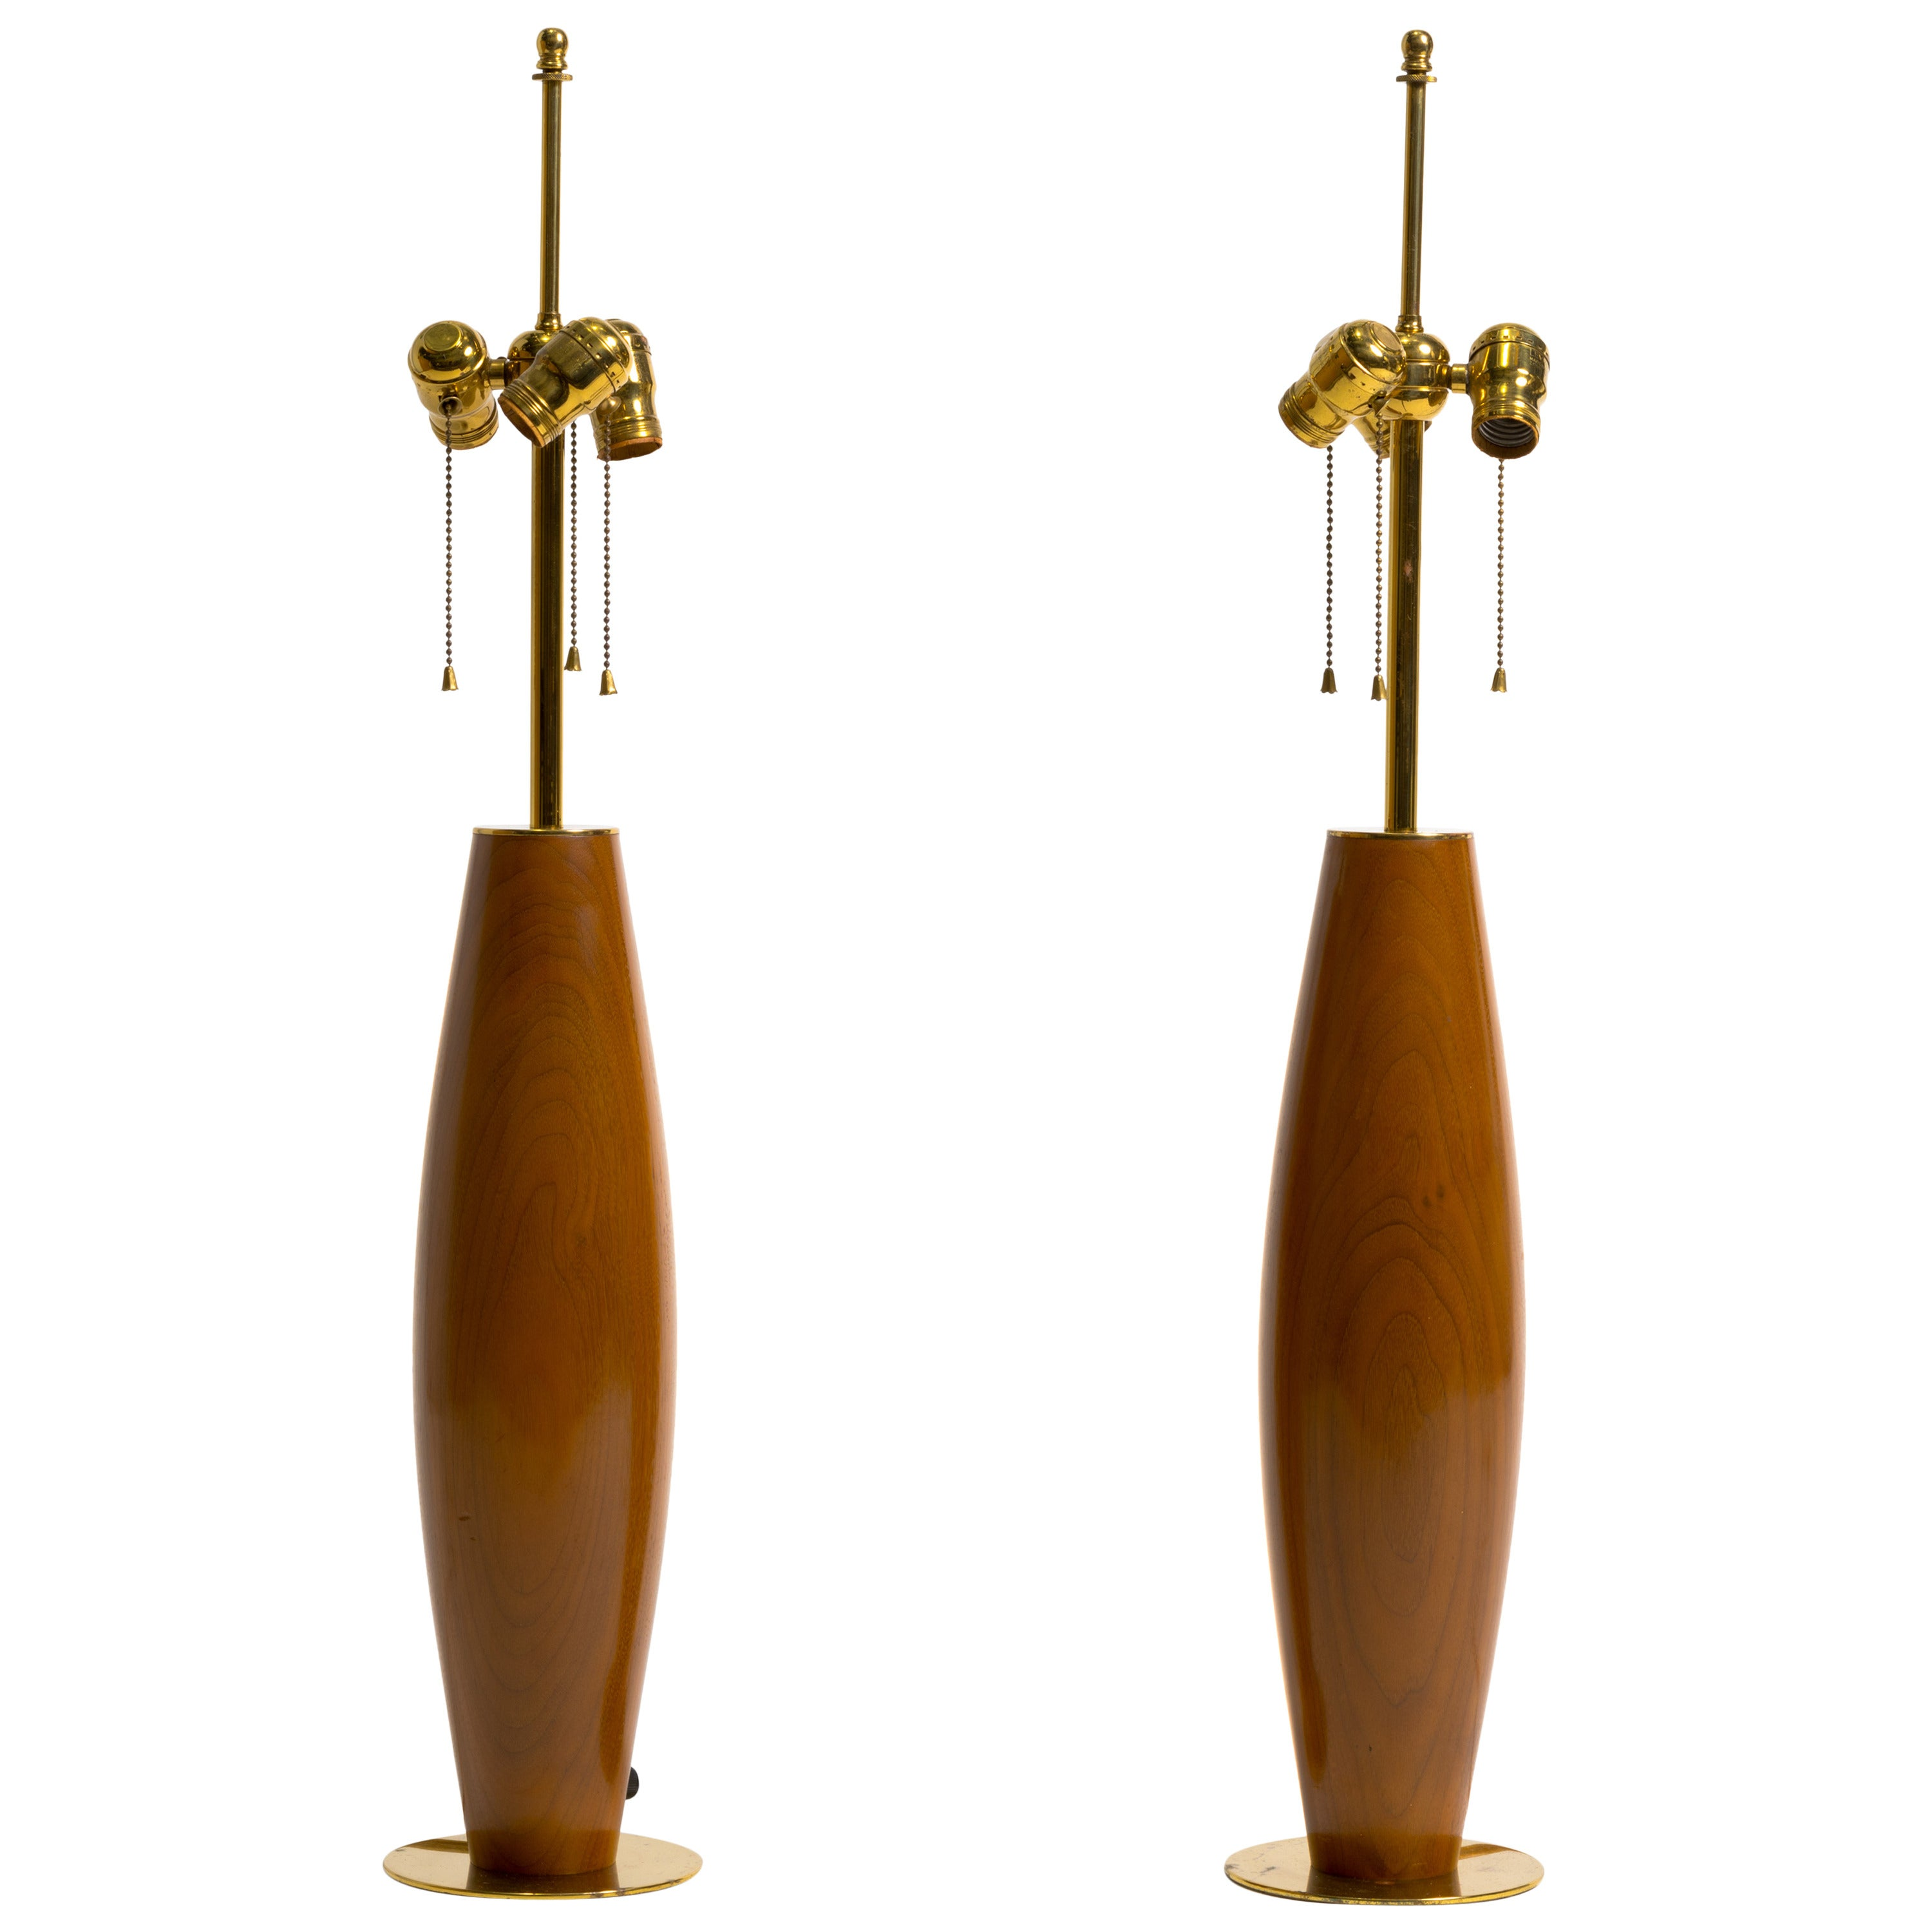 Pair of Monumental Walnut and Brass Table Lamps